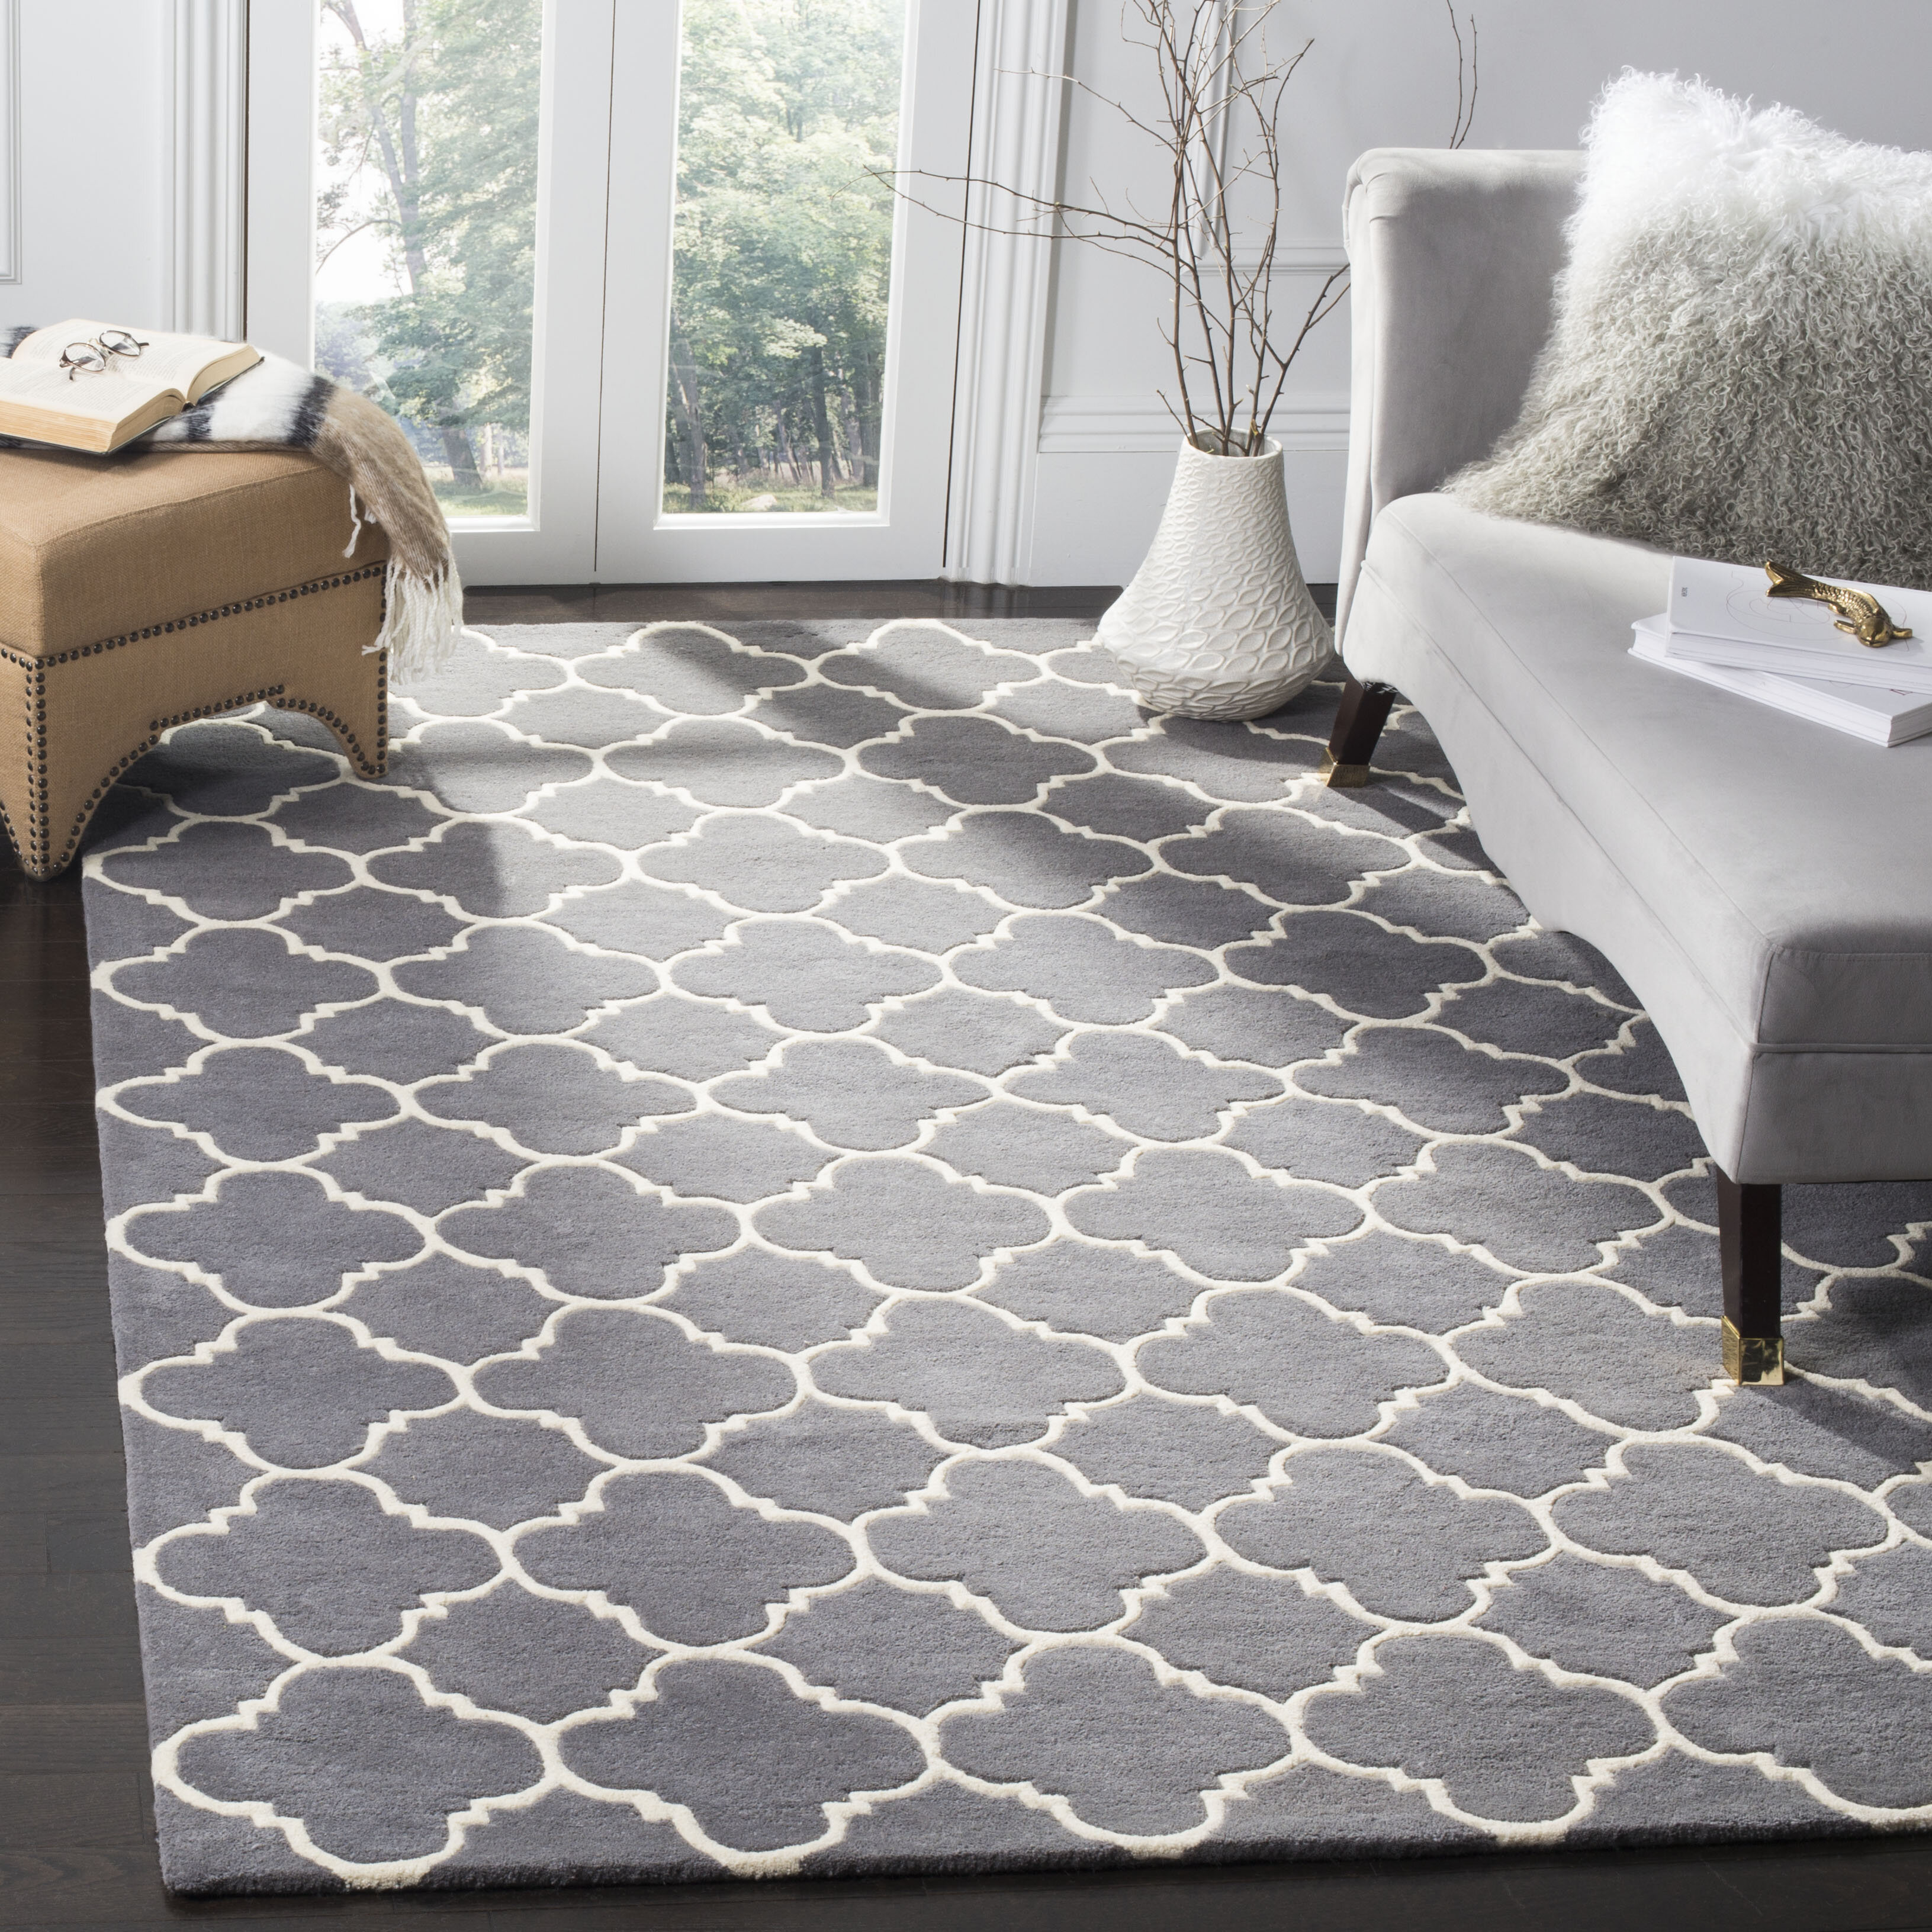 Charlton Home Donoghue Hand Tufted Wool Dark Gray Ivory Area Rug Reviews Wayfair